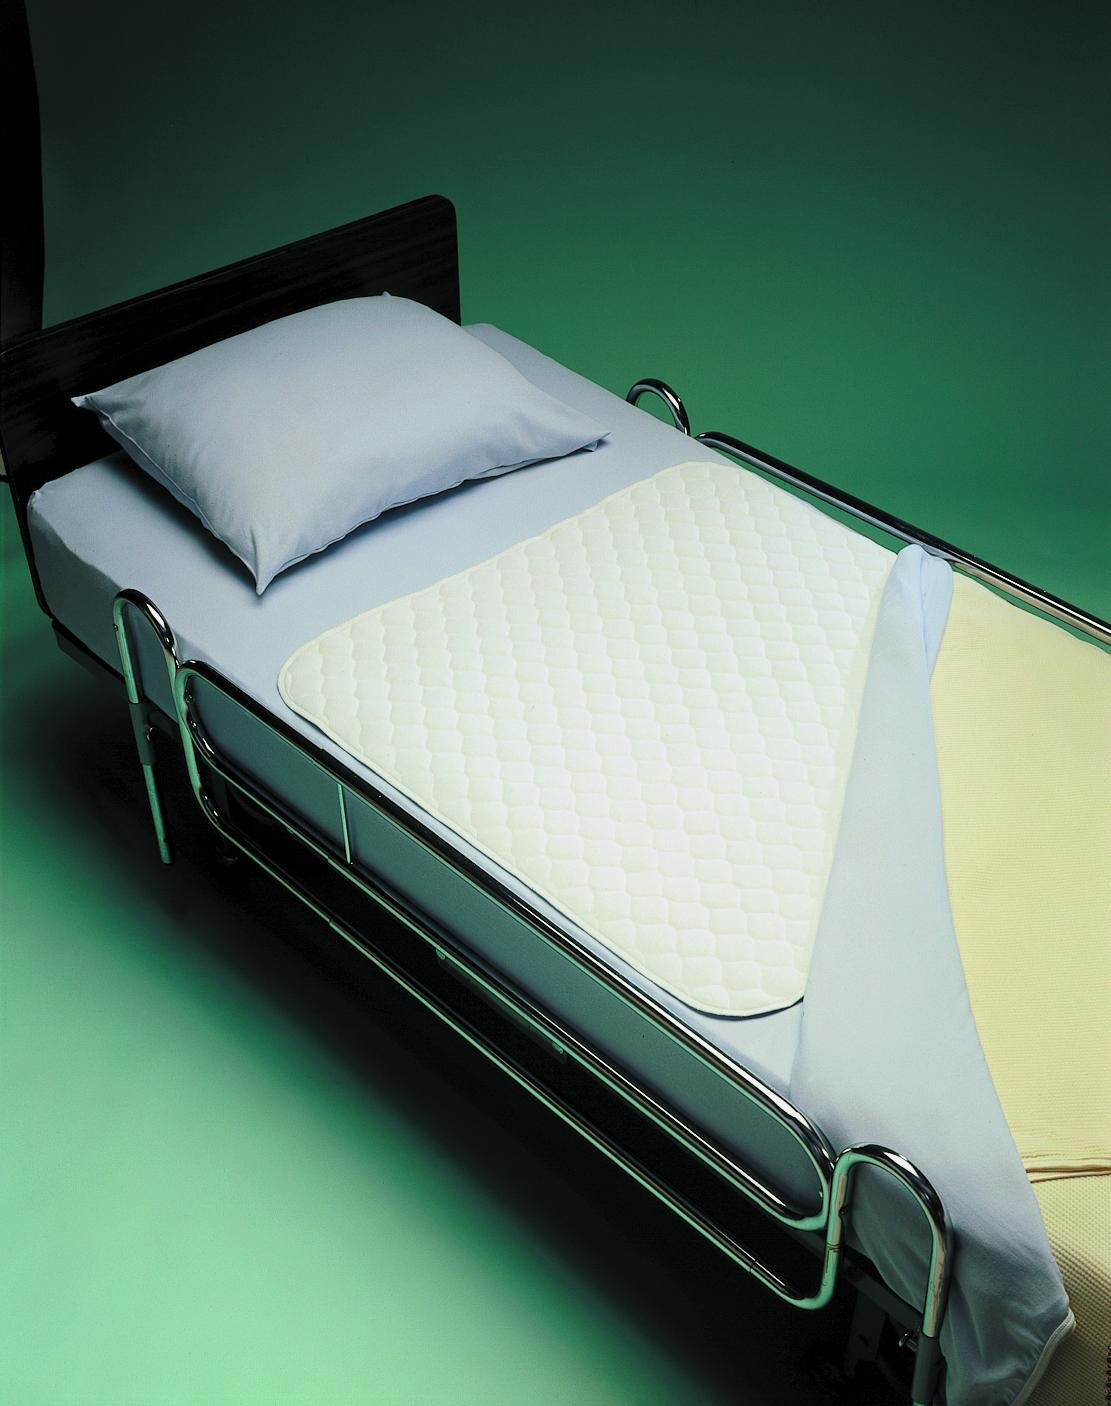 Invacare Reusable Bed Pads 34 x 36 in./Absorbs 1000 cc/Bulk